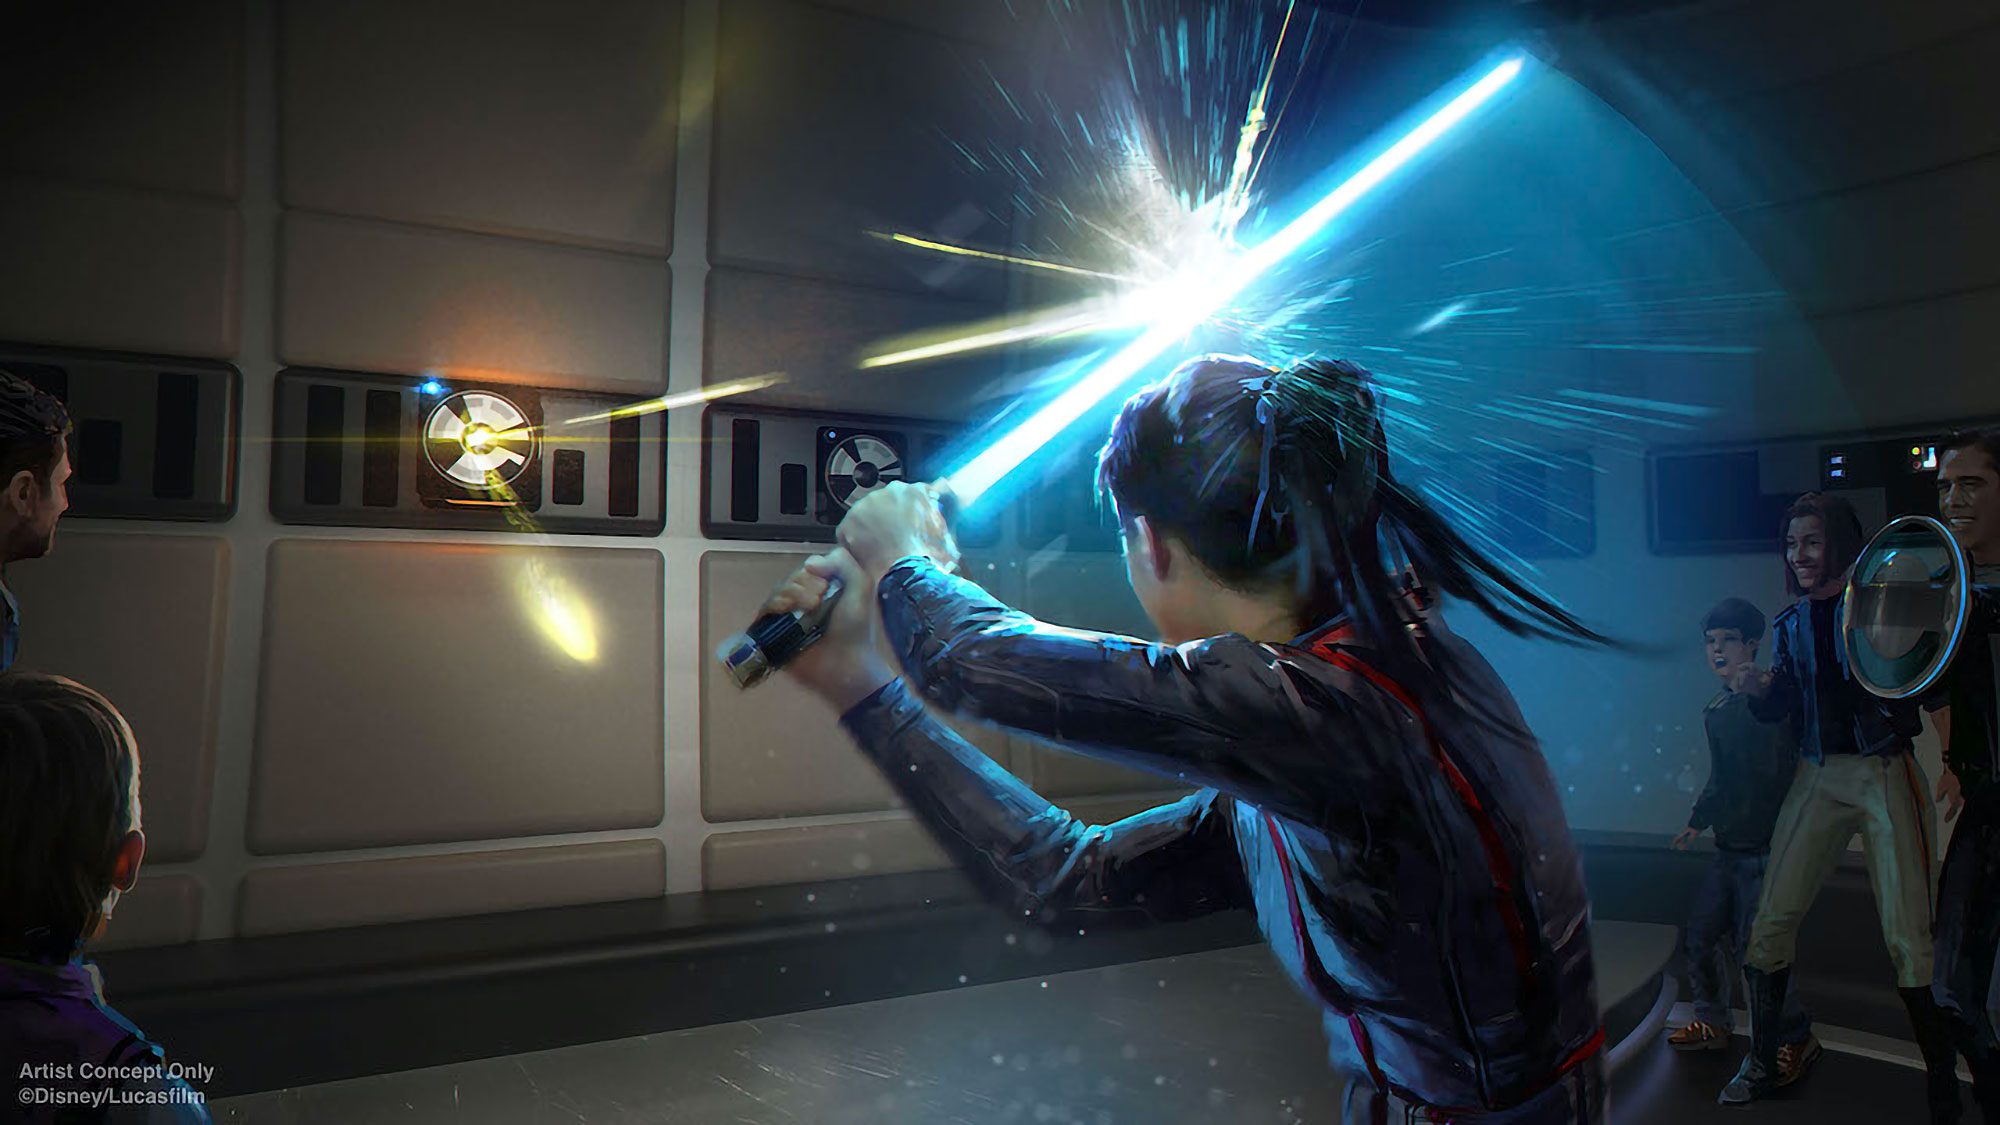 Disney Imagineering Real-life Lightsaber Unveiled